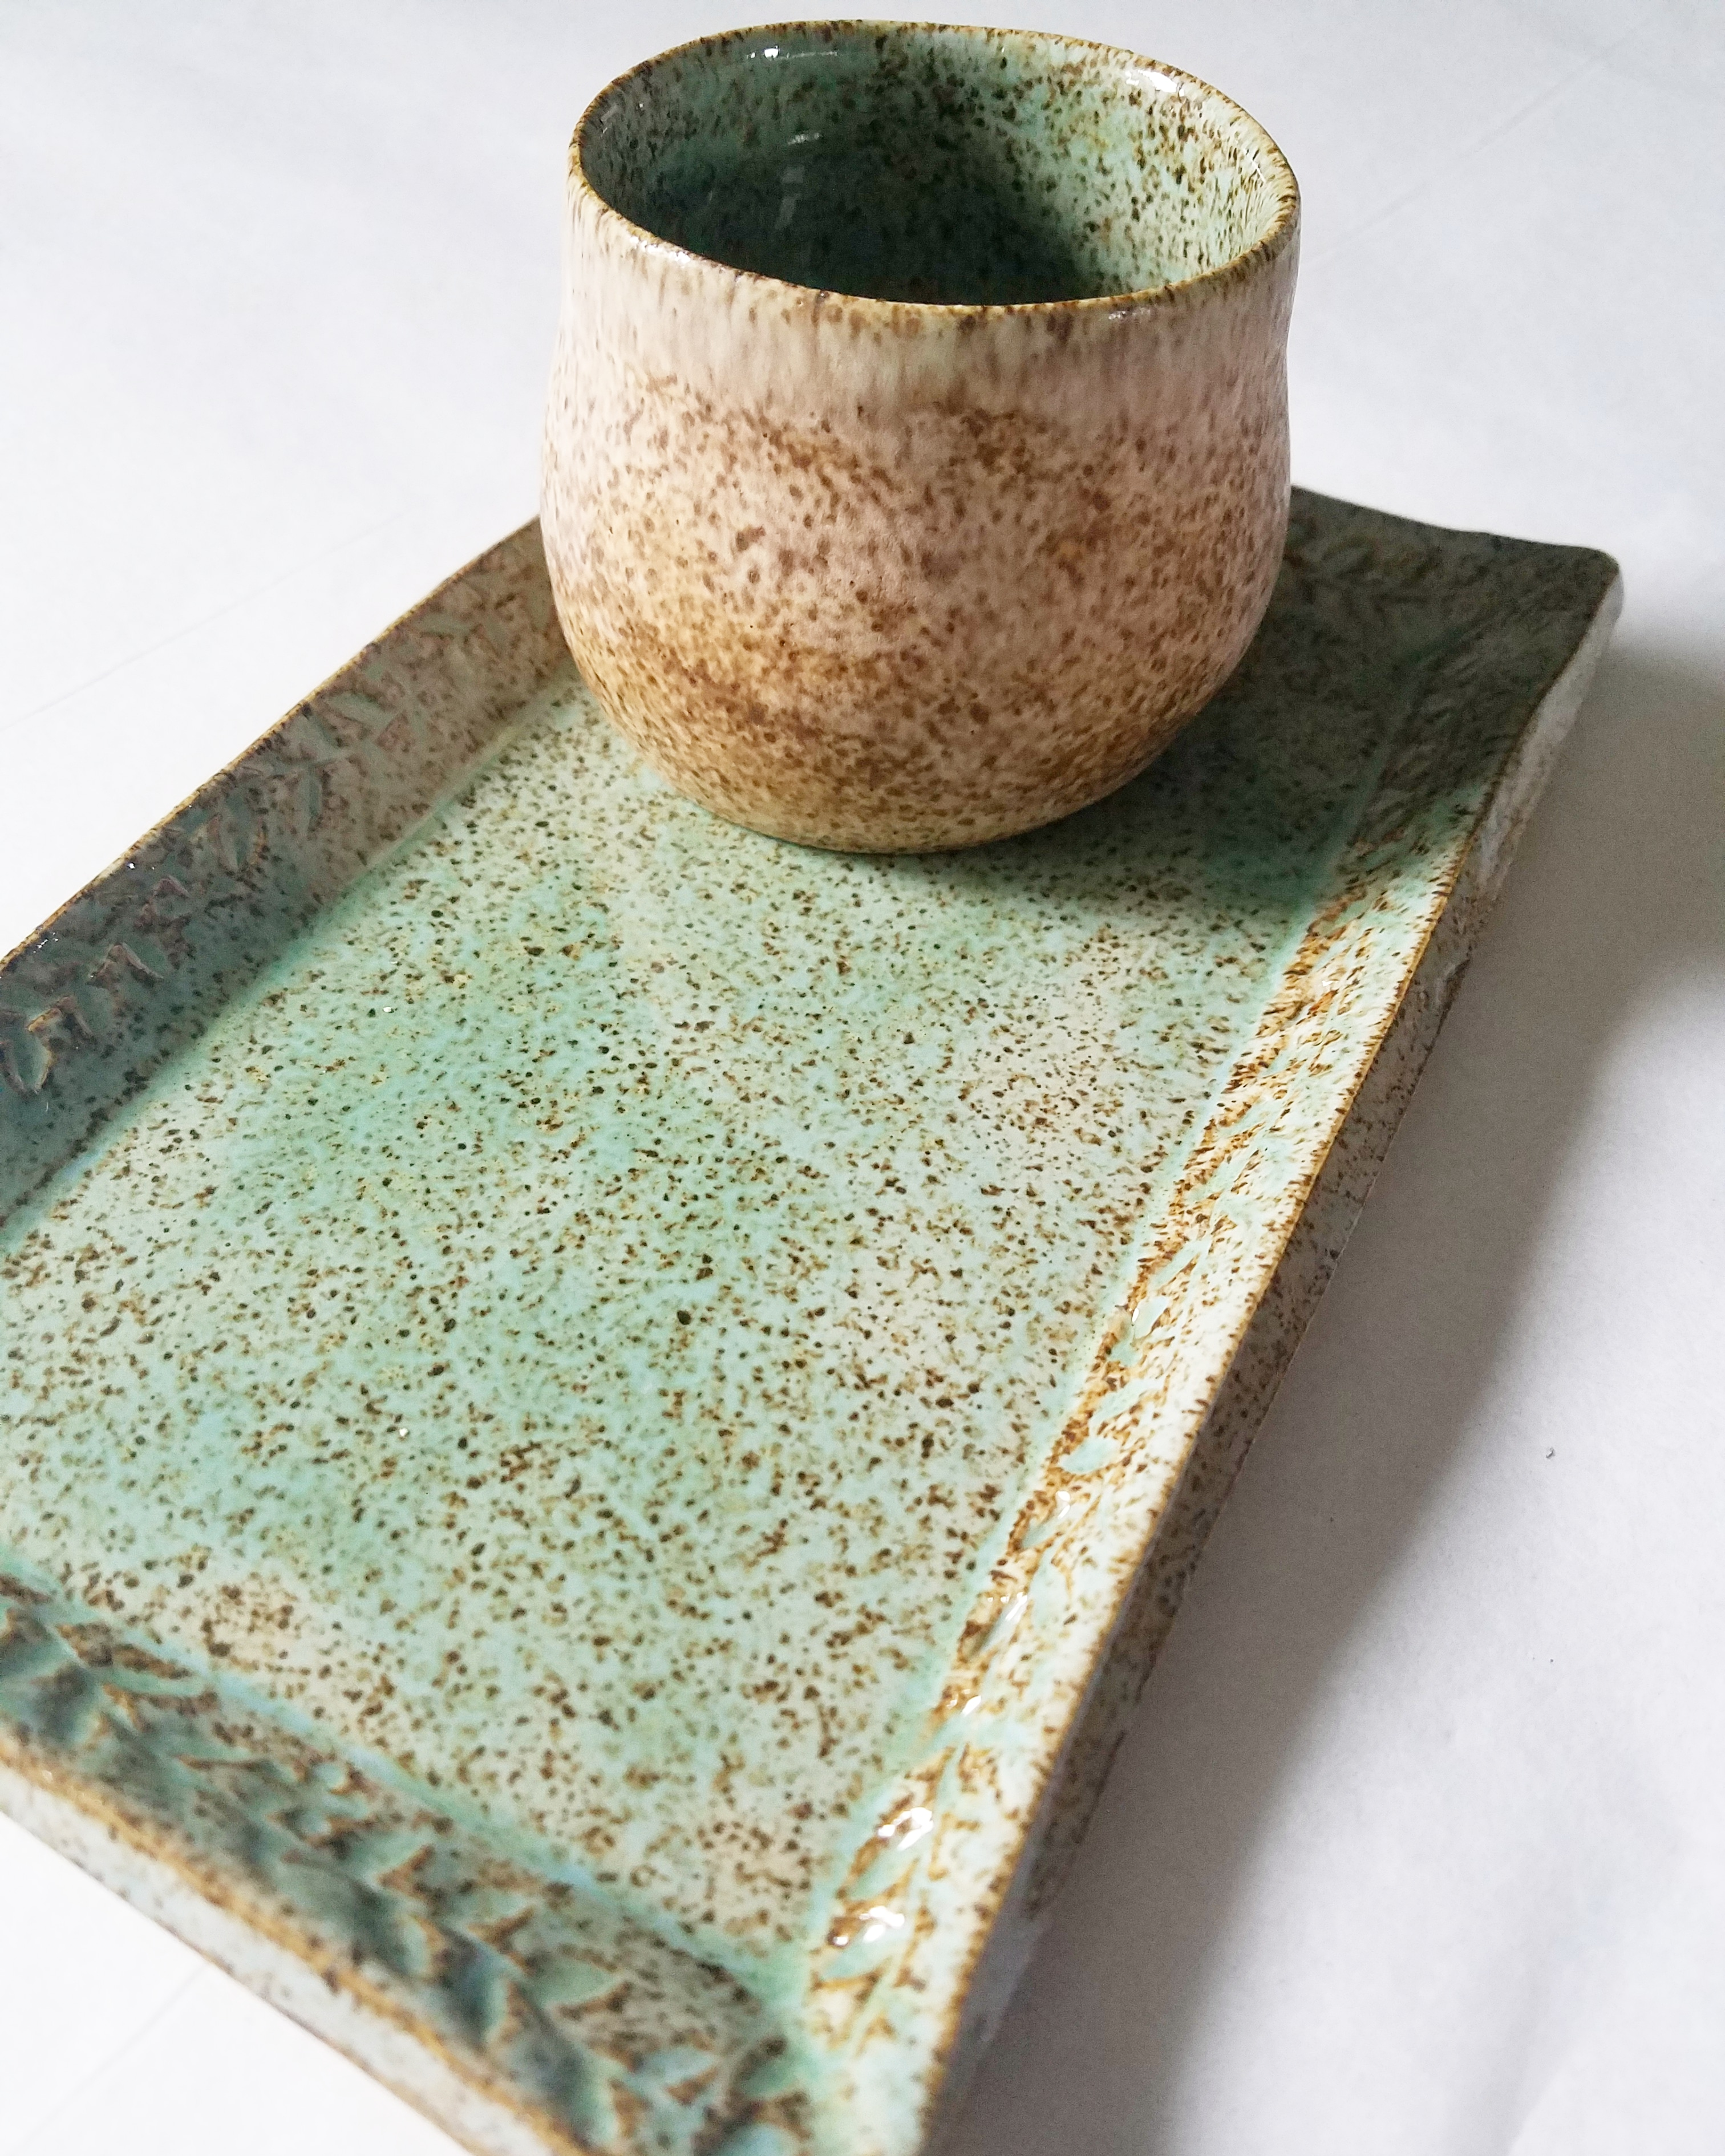 aqua and white rustic pottery set